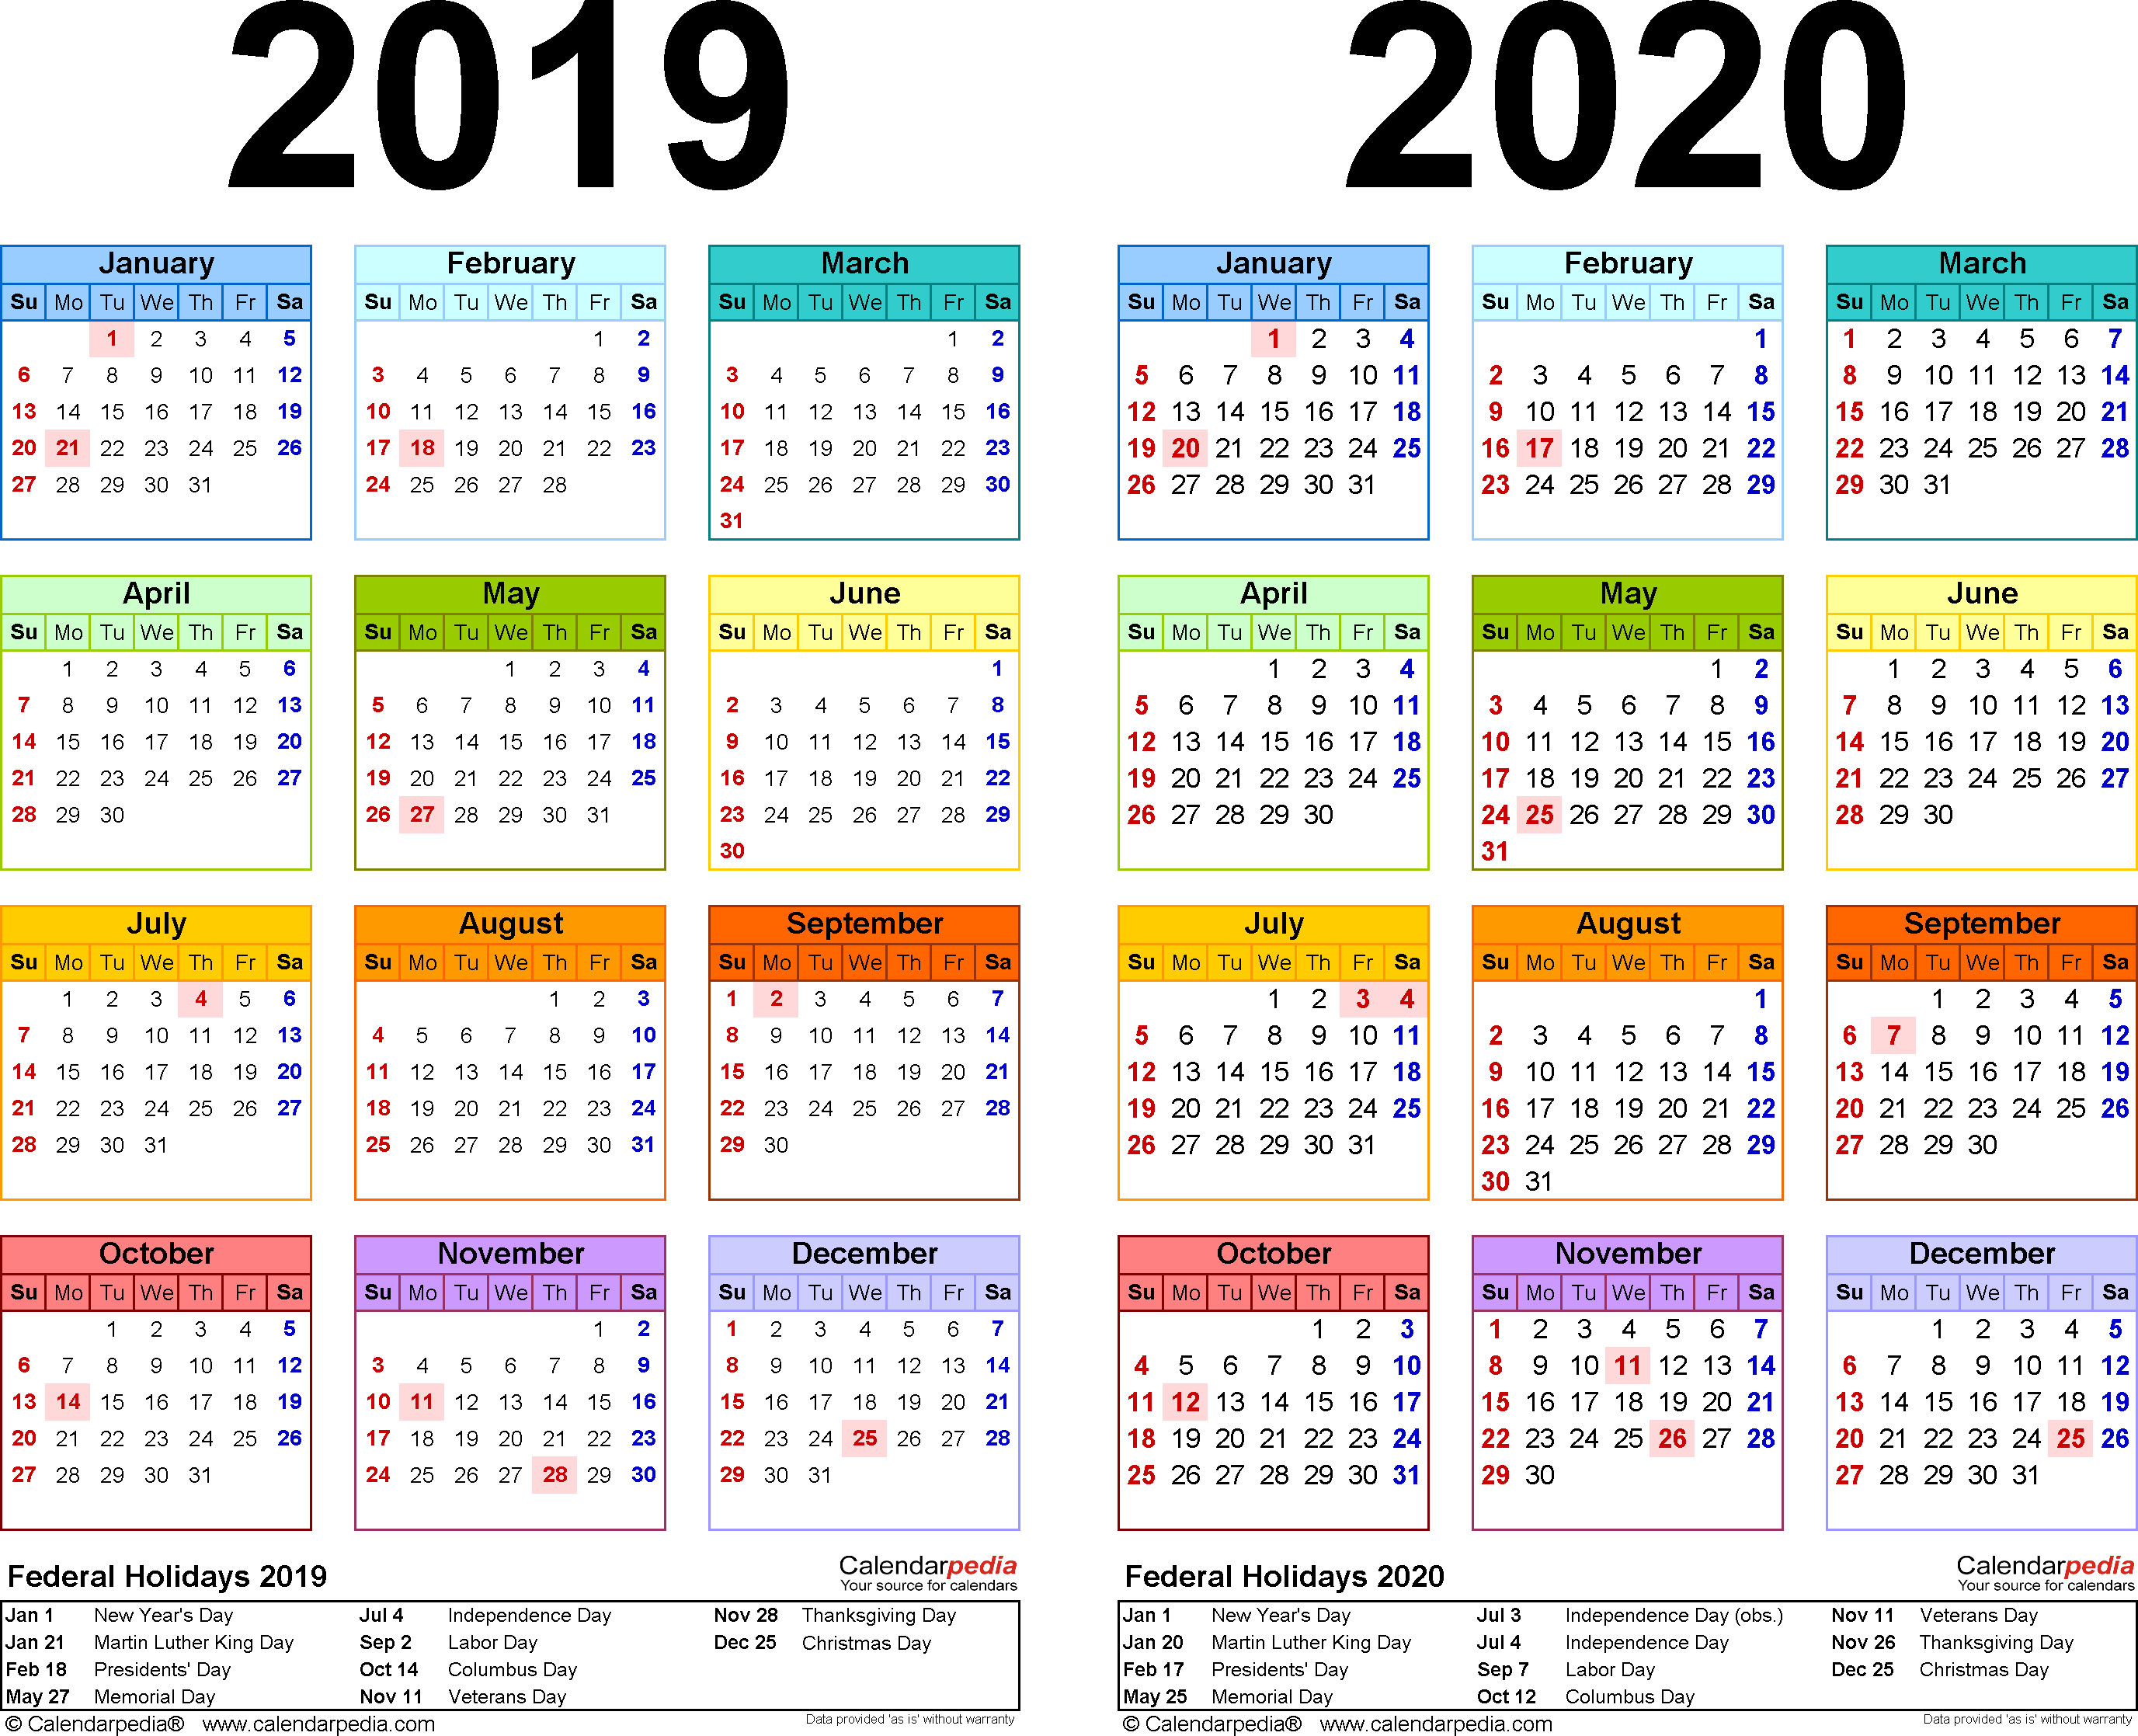 2019-2020 Two Year Calendar - Free Printable Excel Templates throughout Payroll Calendar For Tax Year 2020/18